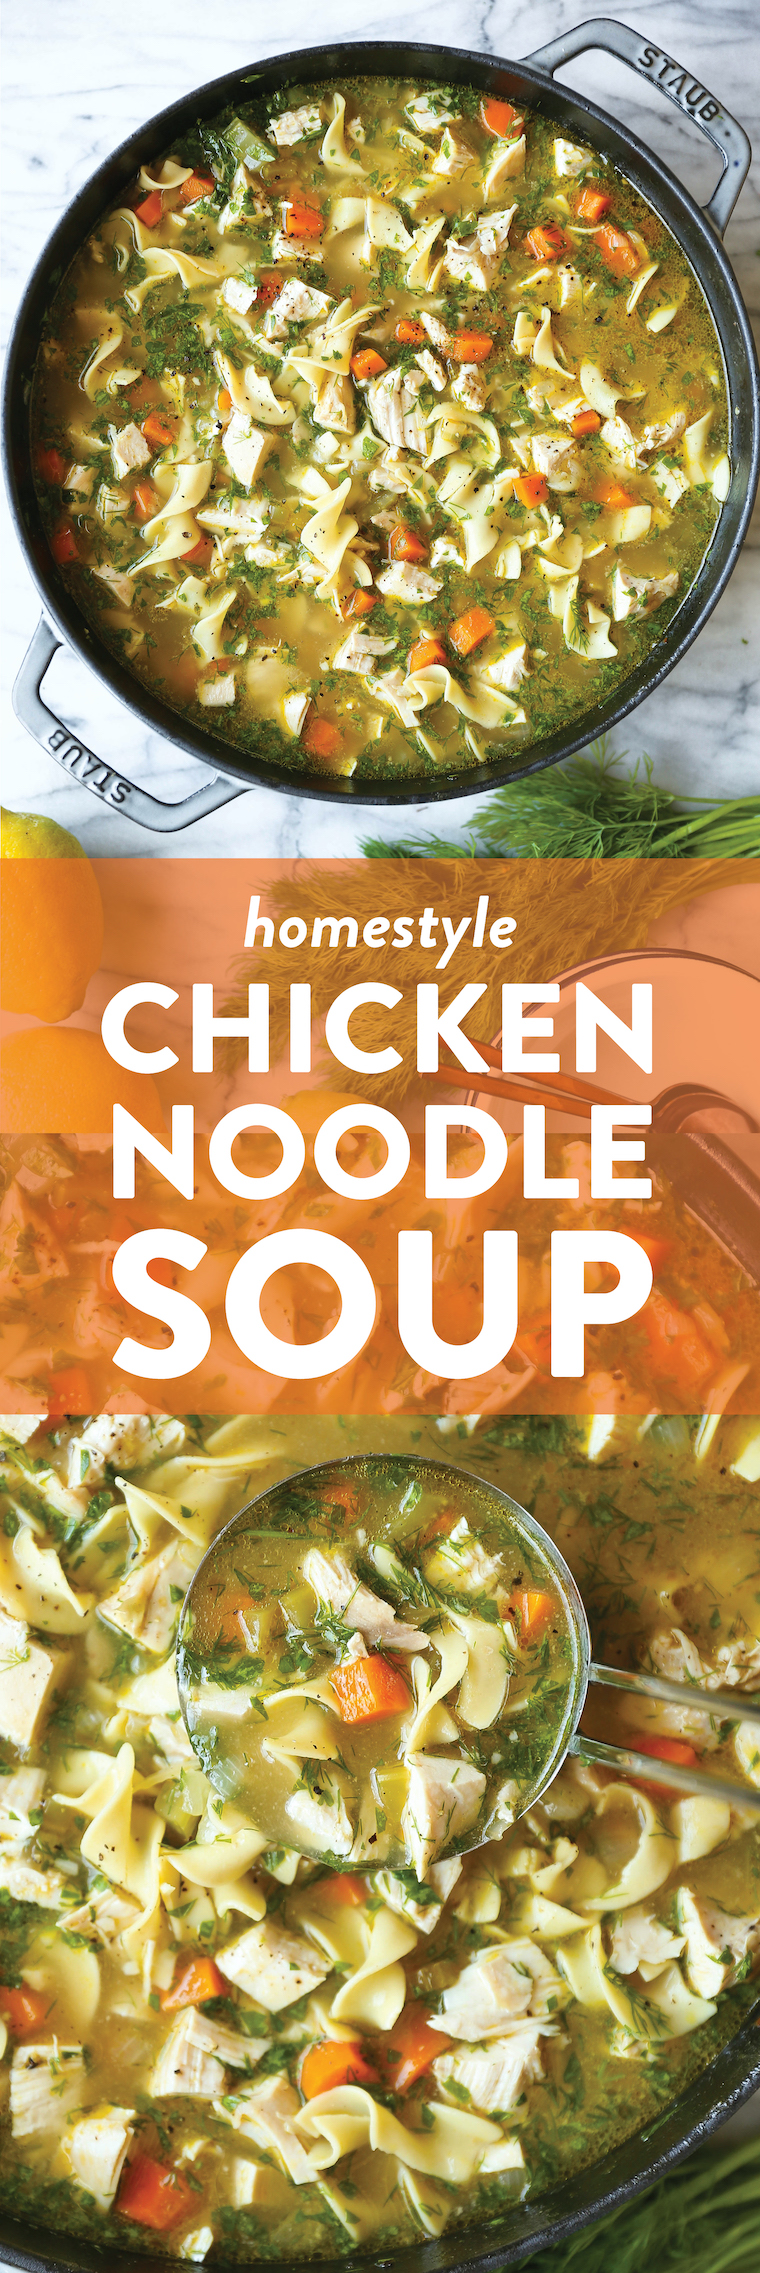 Homestyle Chicken Noodle Soup - Classic chicken noodle soup that will leave you feeling so good, so warm, so cozy. Perfect for sick days and cold nights!!!